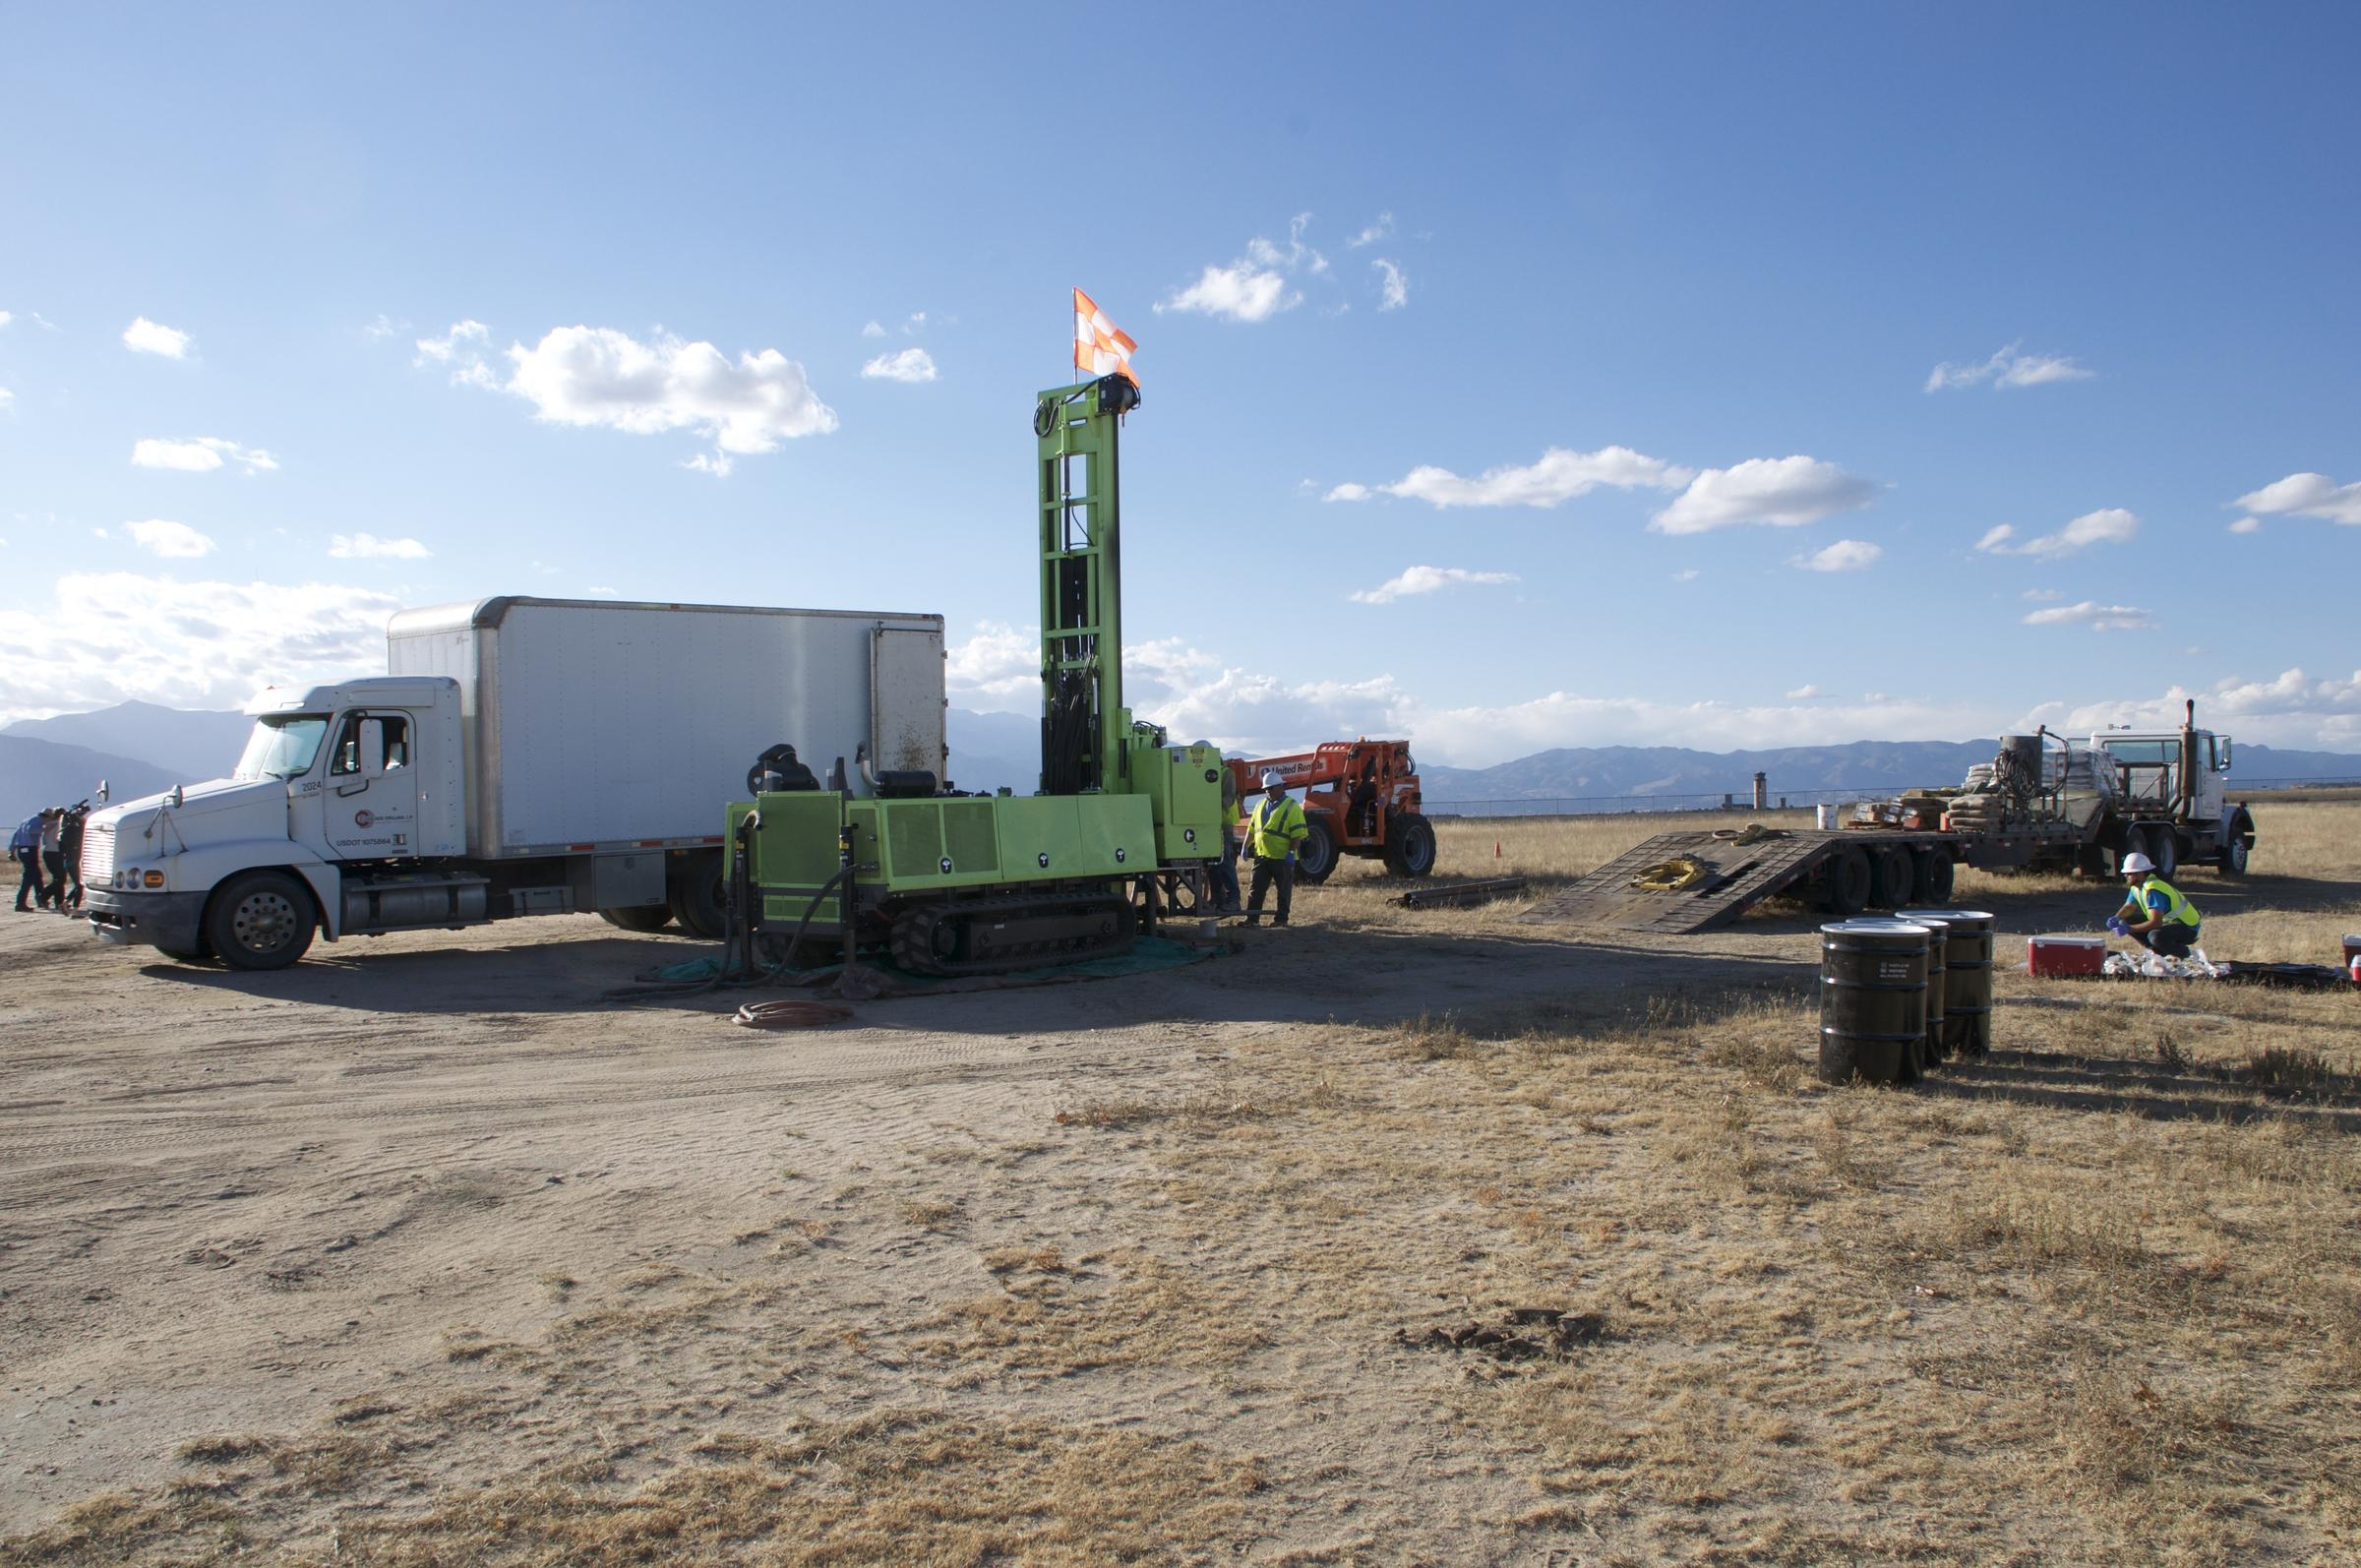 Crews drilled a monitoring well at the former site of a firefighting training are at Peterson Air Force Base. Wednesday, 11/2/16.